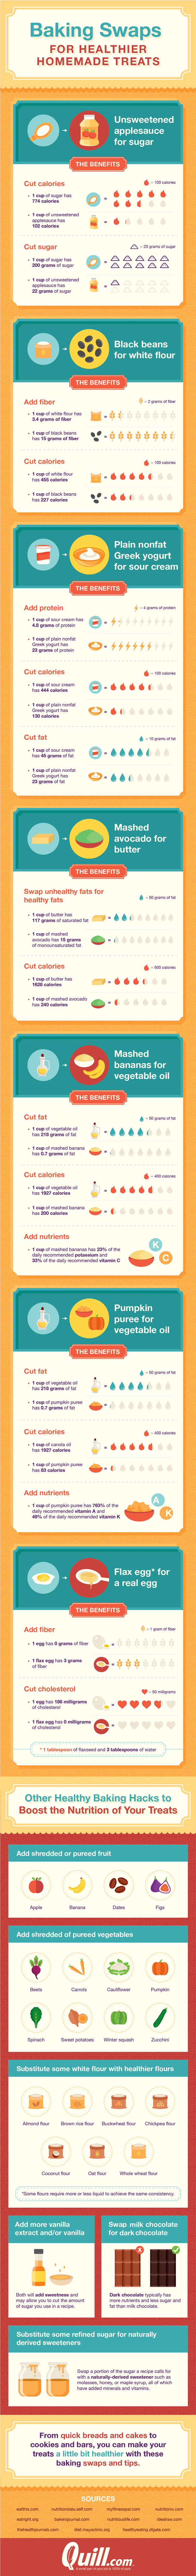 Healthier Alternatives to Common Baking Ingredients - Infographic